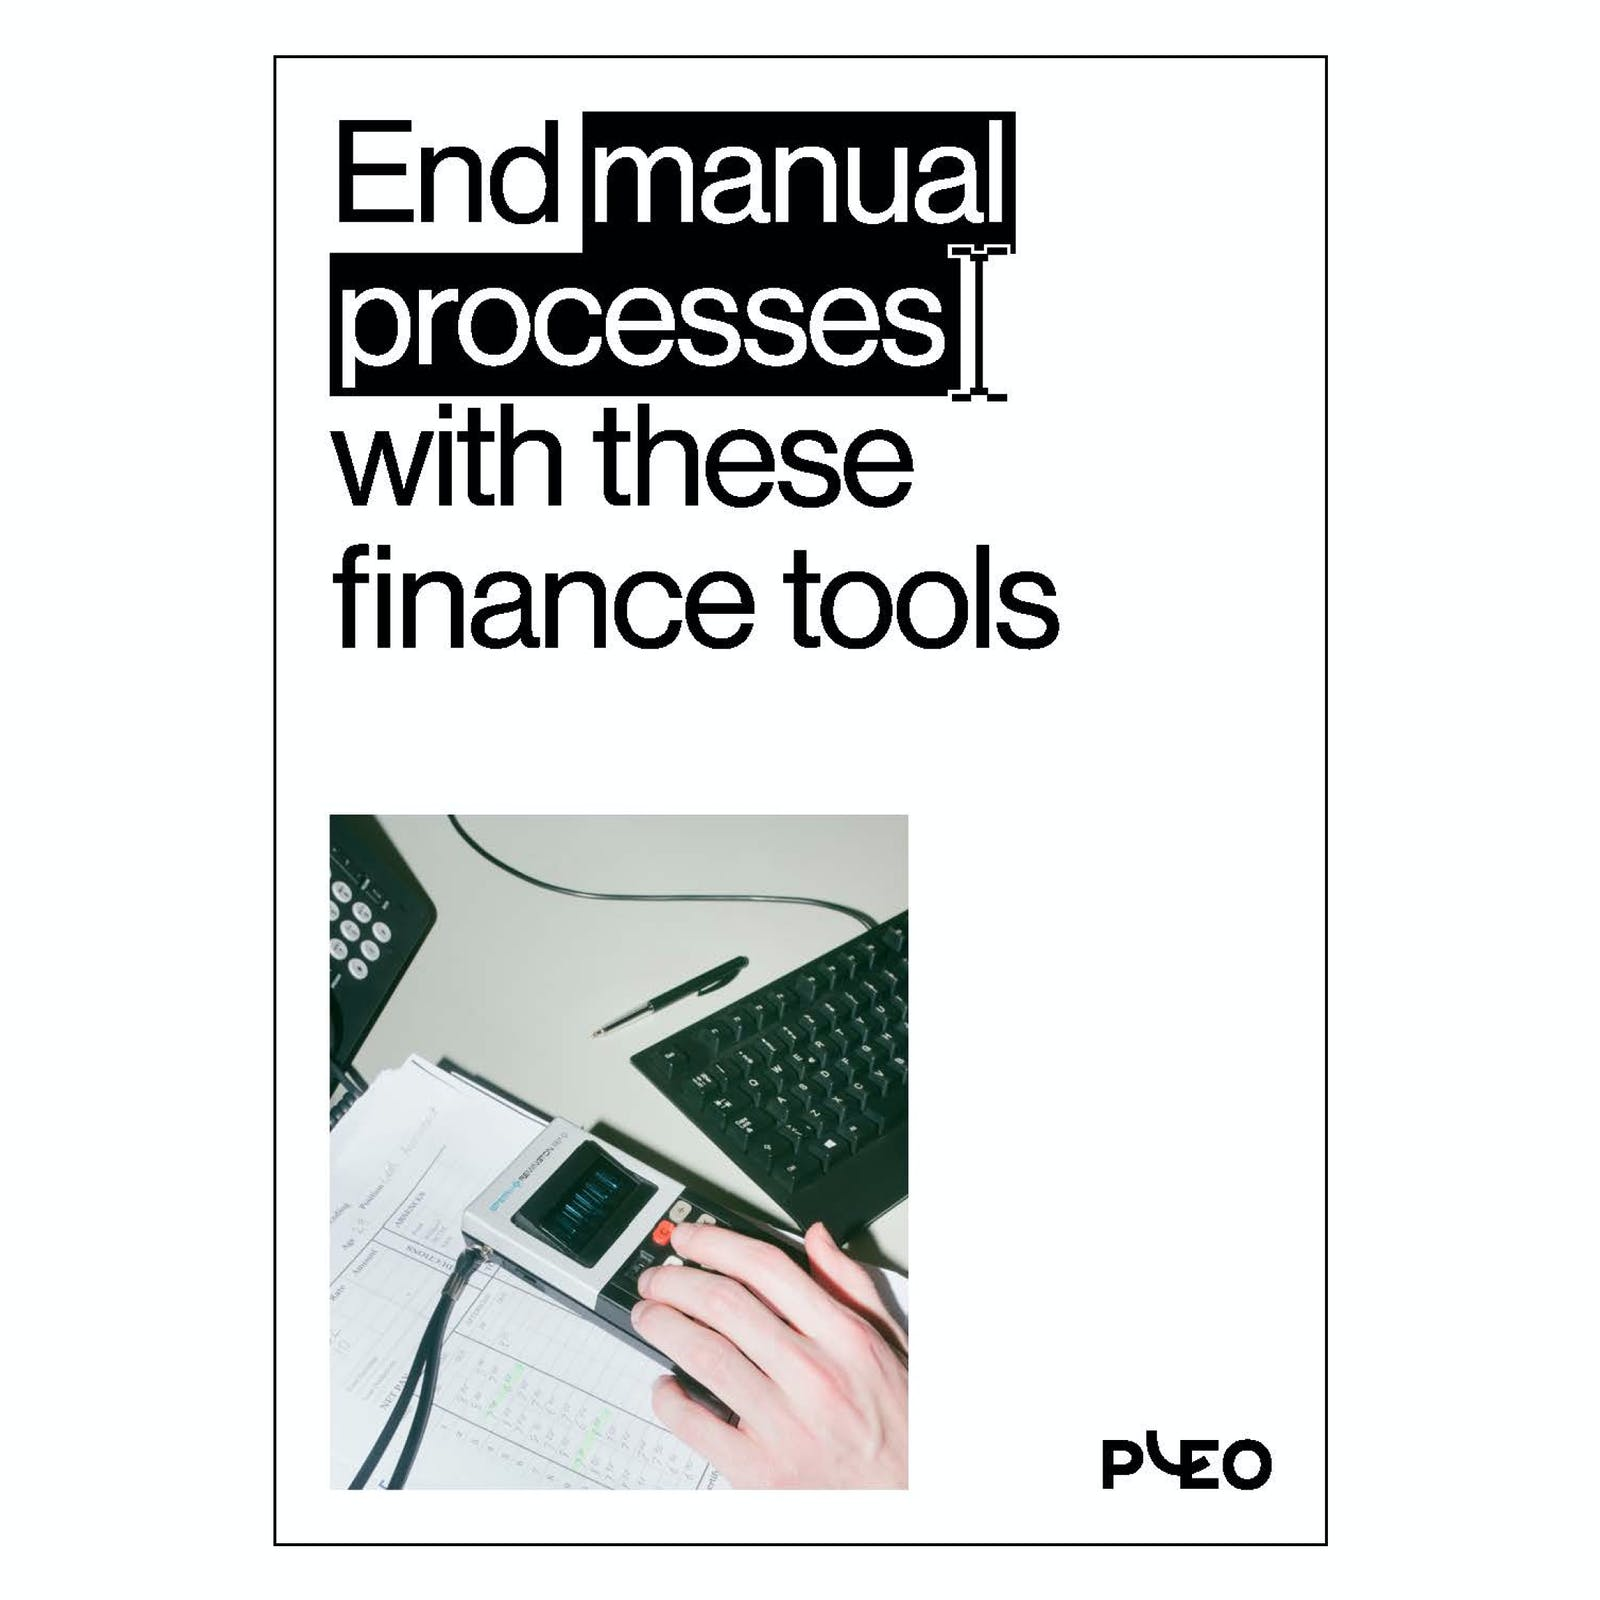 End manual processes with these finance tools cover